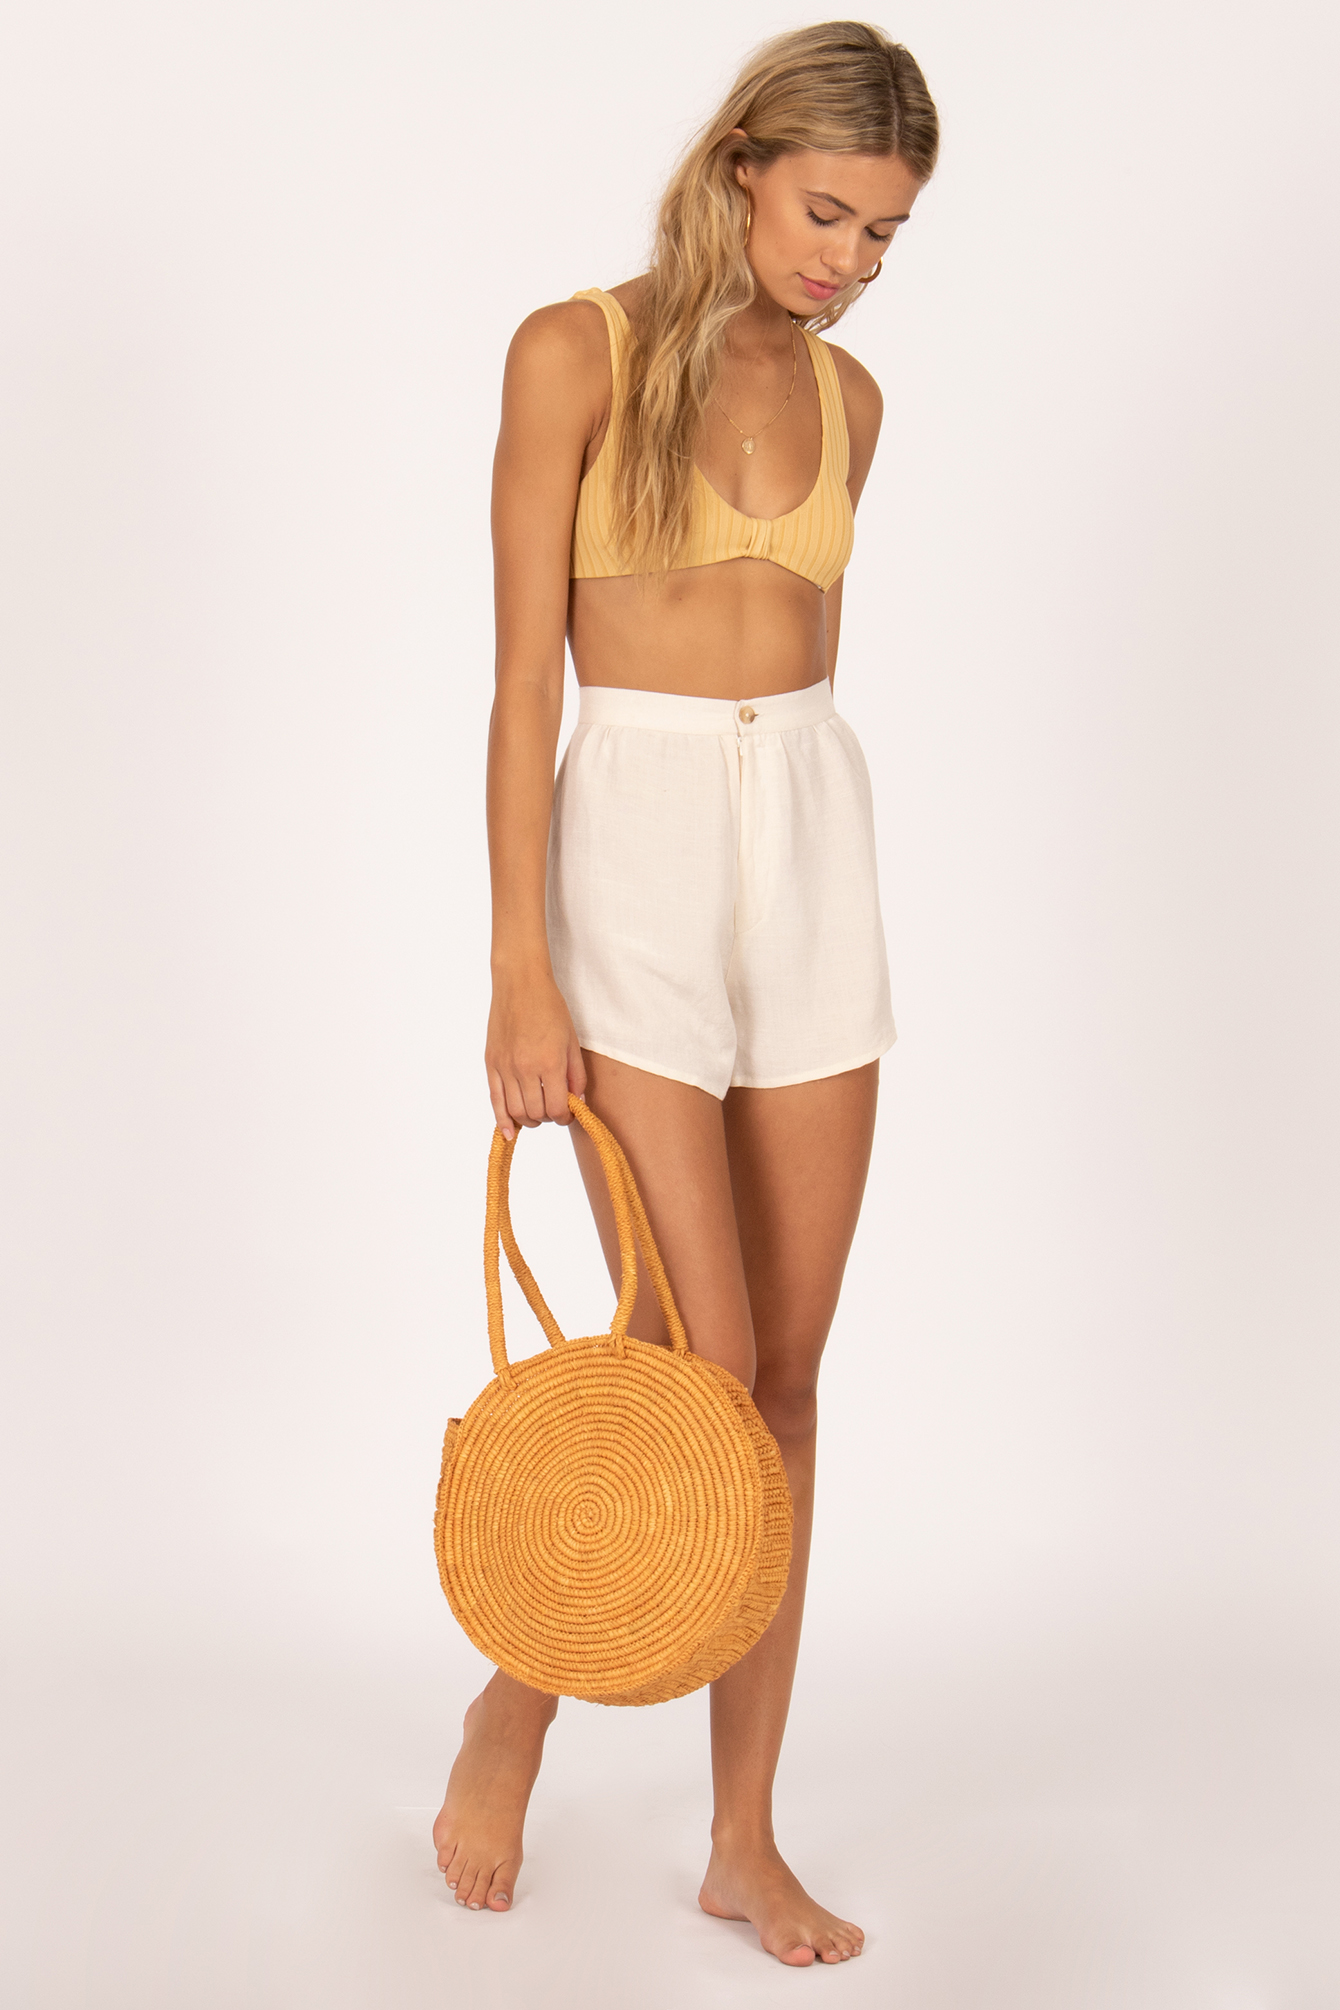 The Manta Round Bag - Take us the the tropics…or anywhere. The perfect addition to any summer look.